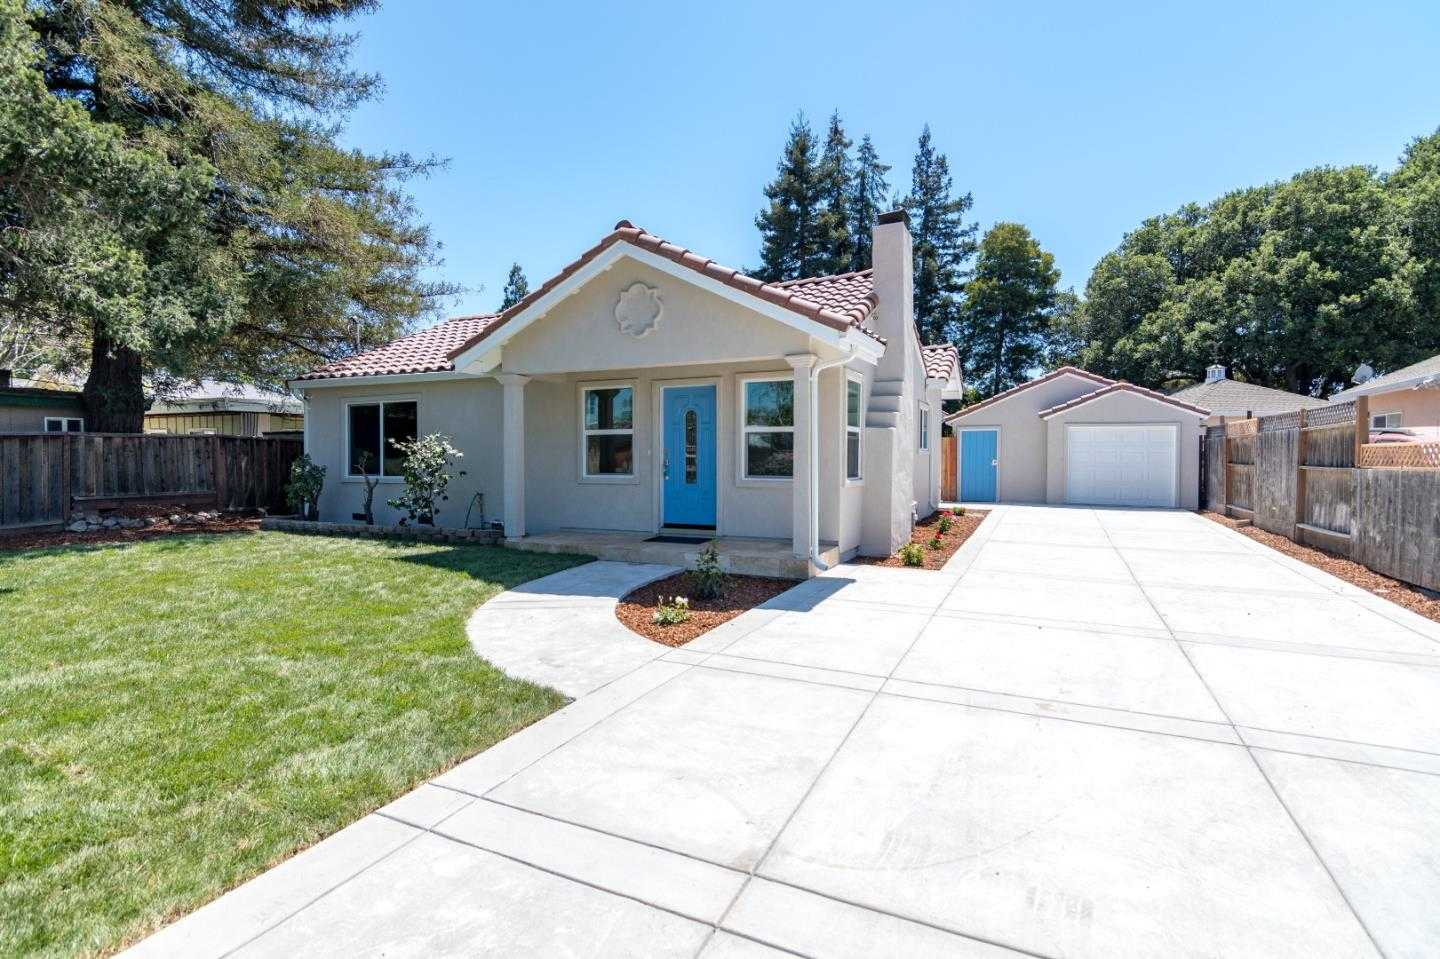 $1,698,000 - 4Br/3Ba -  for Sale in Campbell